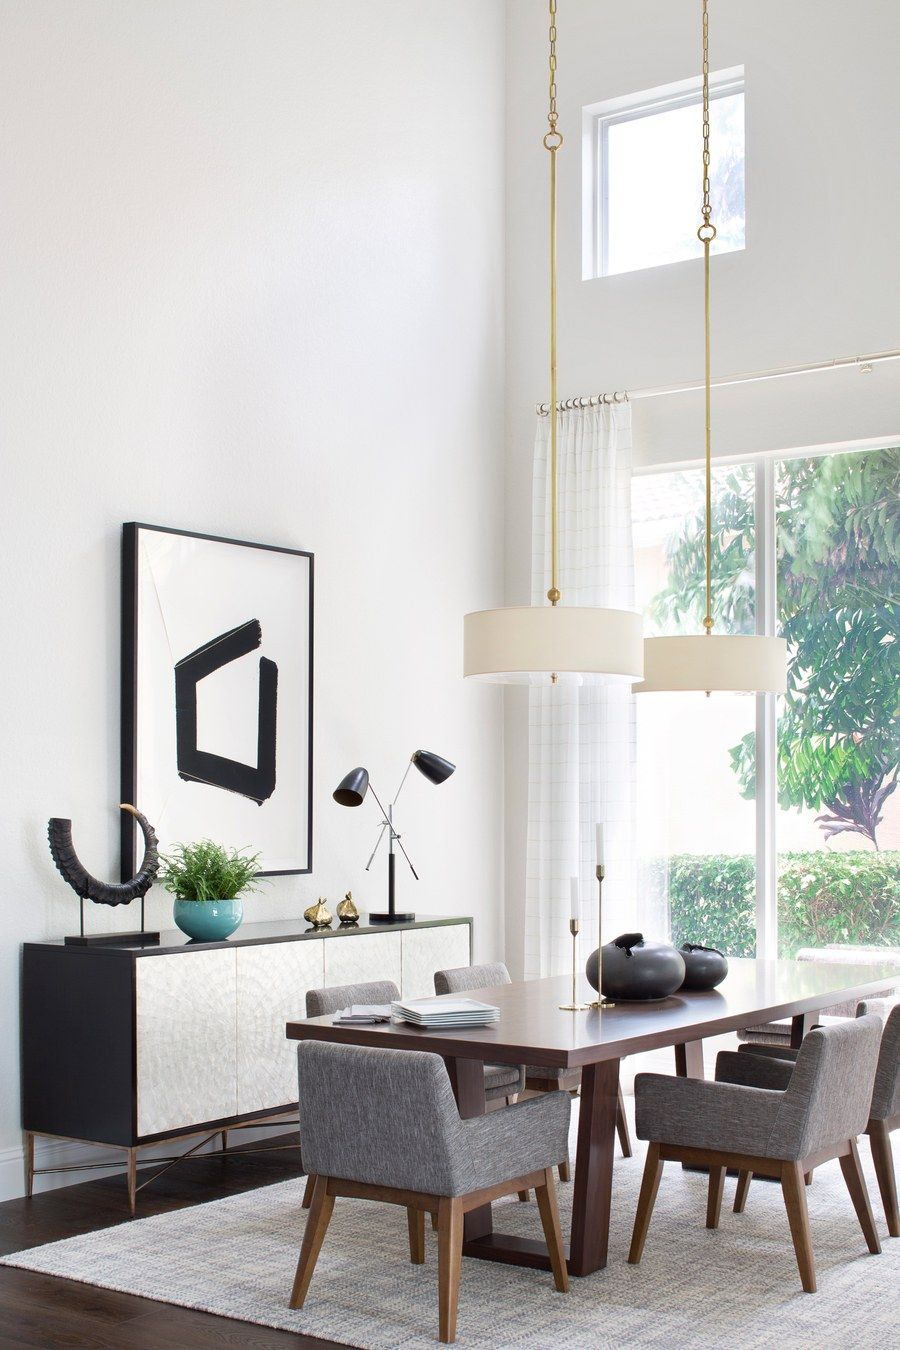 article chairs surround the dining room table which were designed rh pinterest com